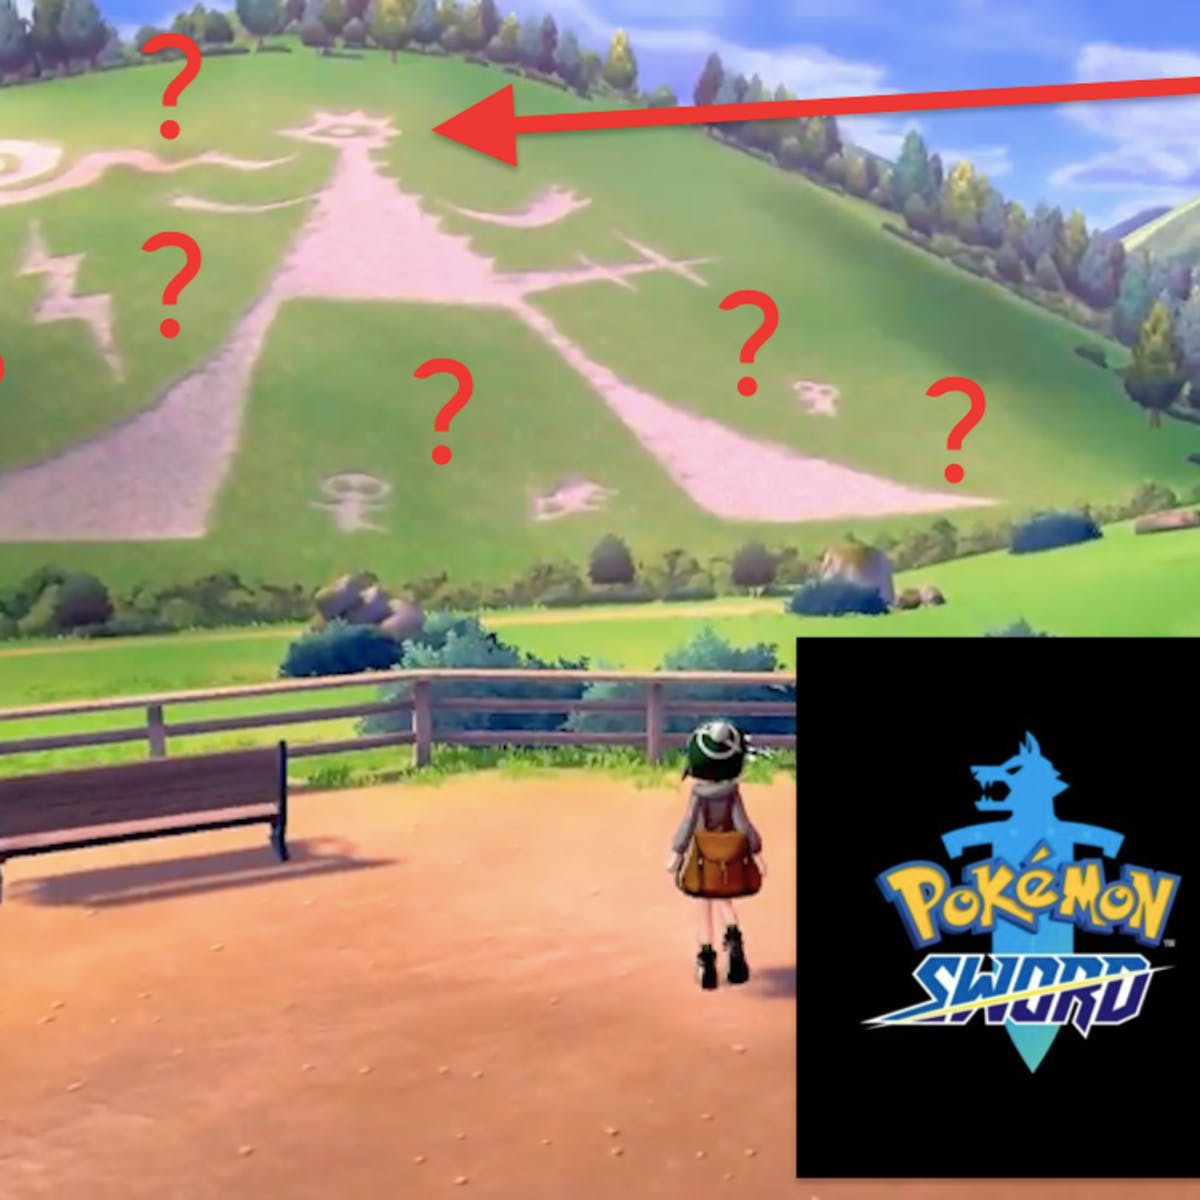 Pokémon Sword and Shield' Legendary Might Be Revealed in the